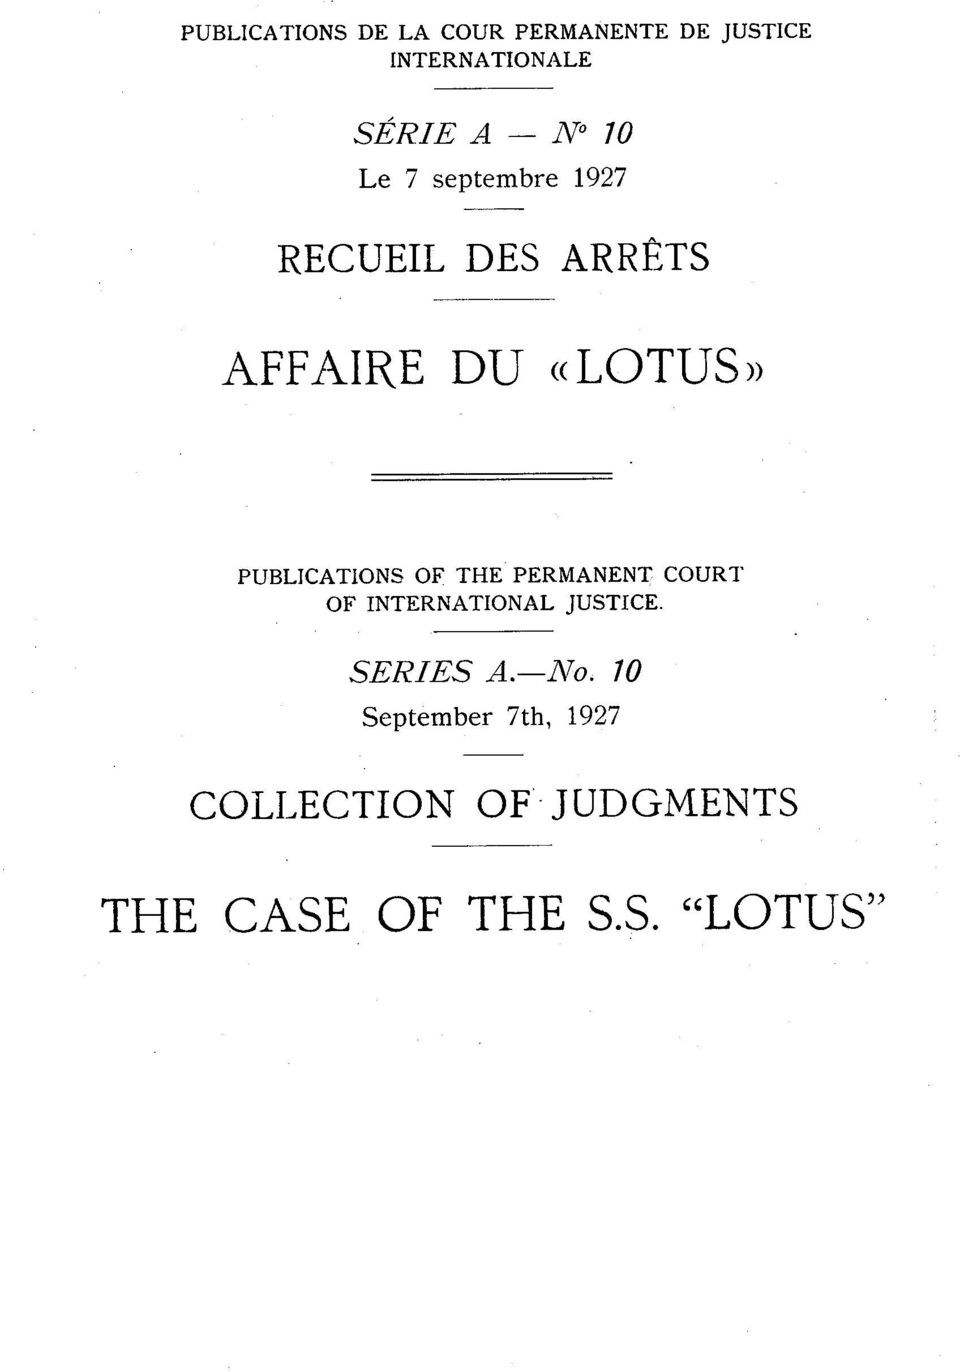 PUBLICATIONS OF THE PERMANENT COUR?' OF INTERNATIONAL JUSTICE. SERIES A.